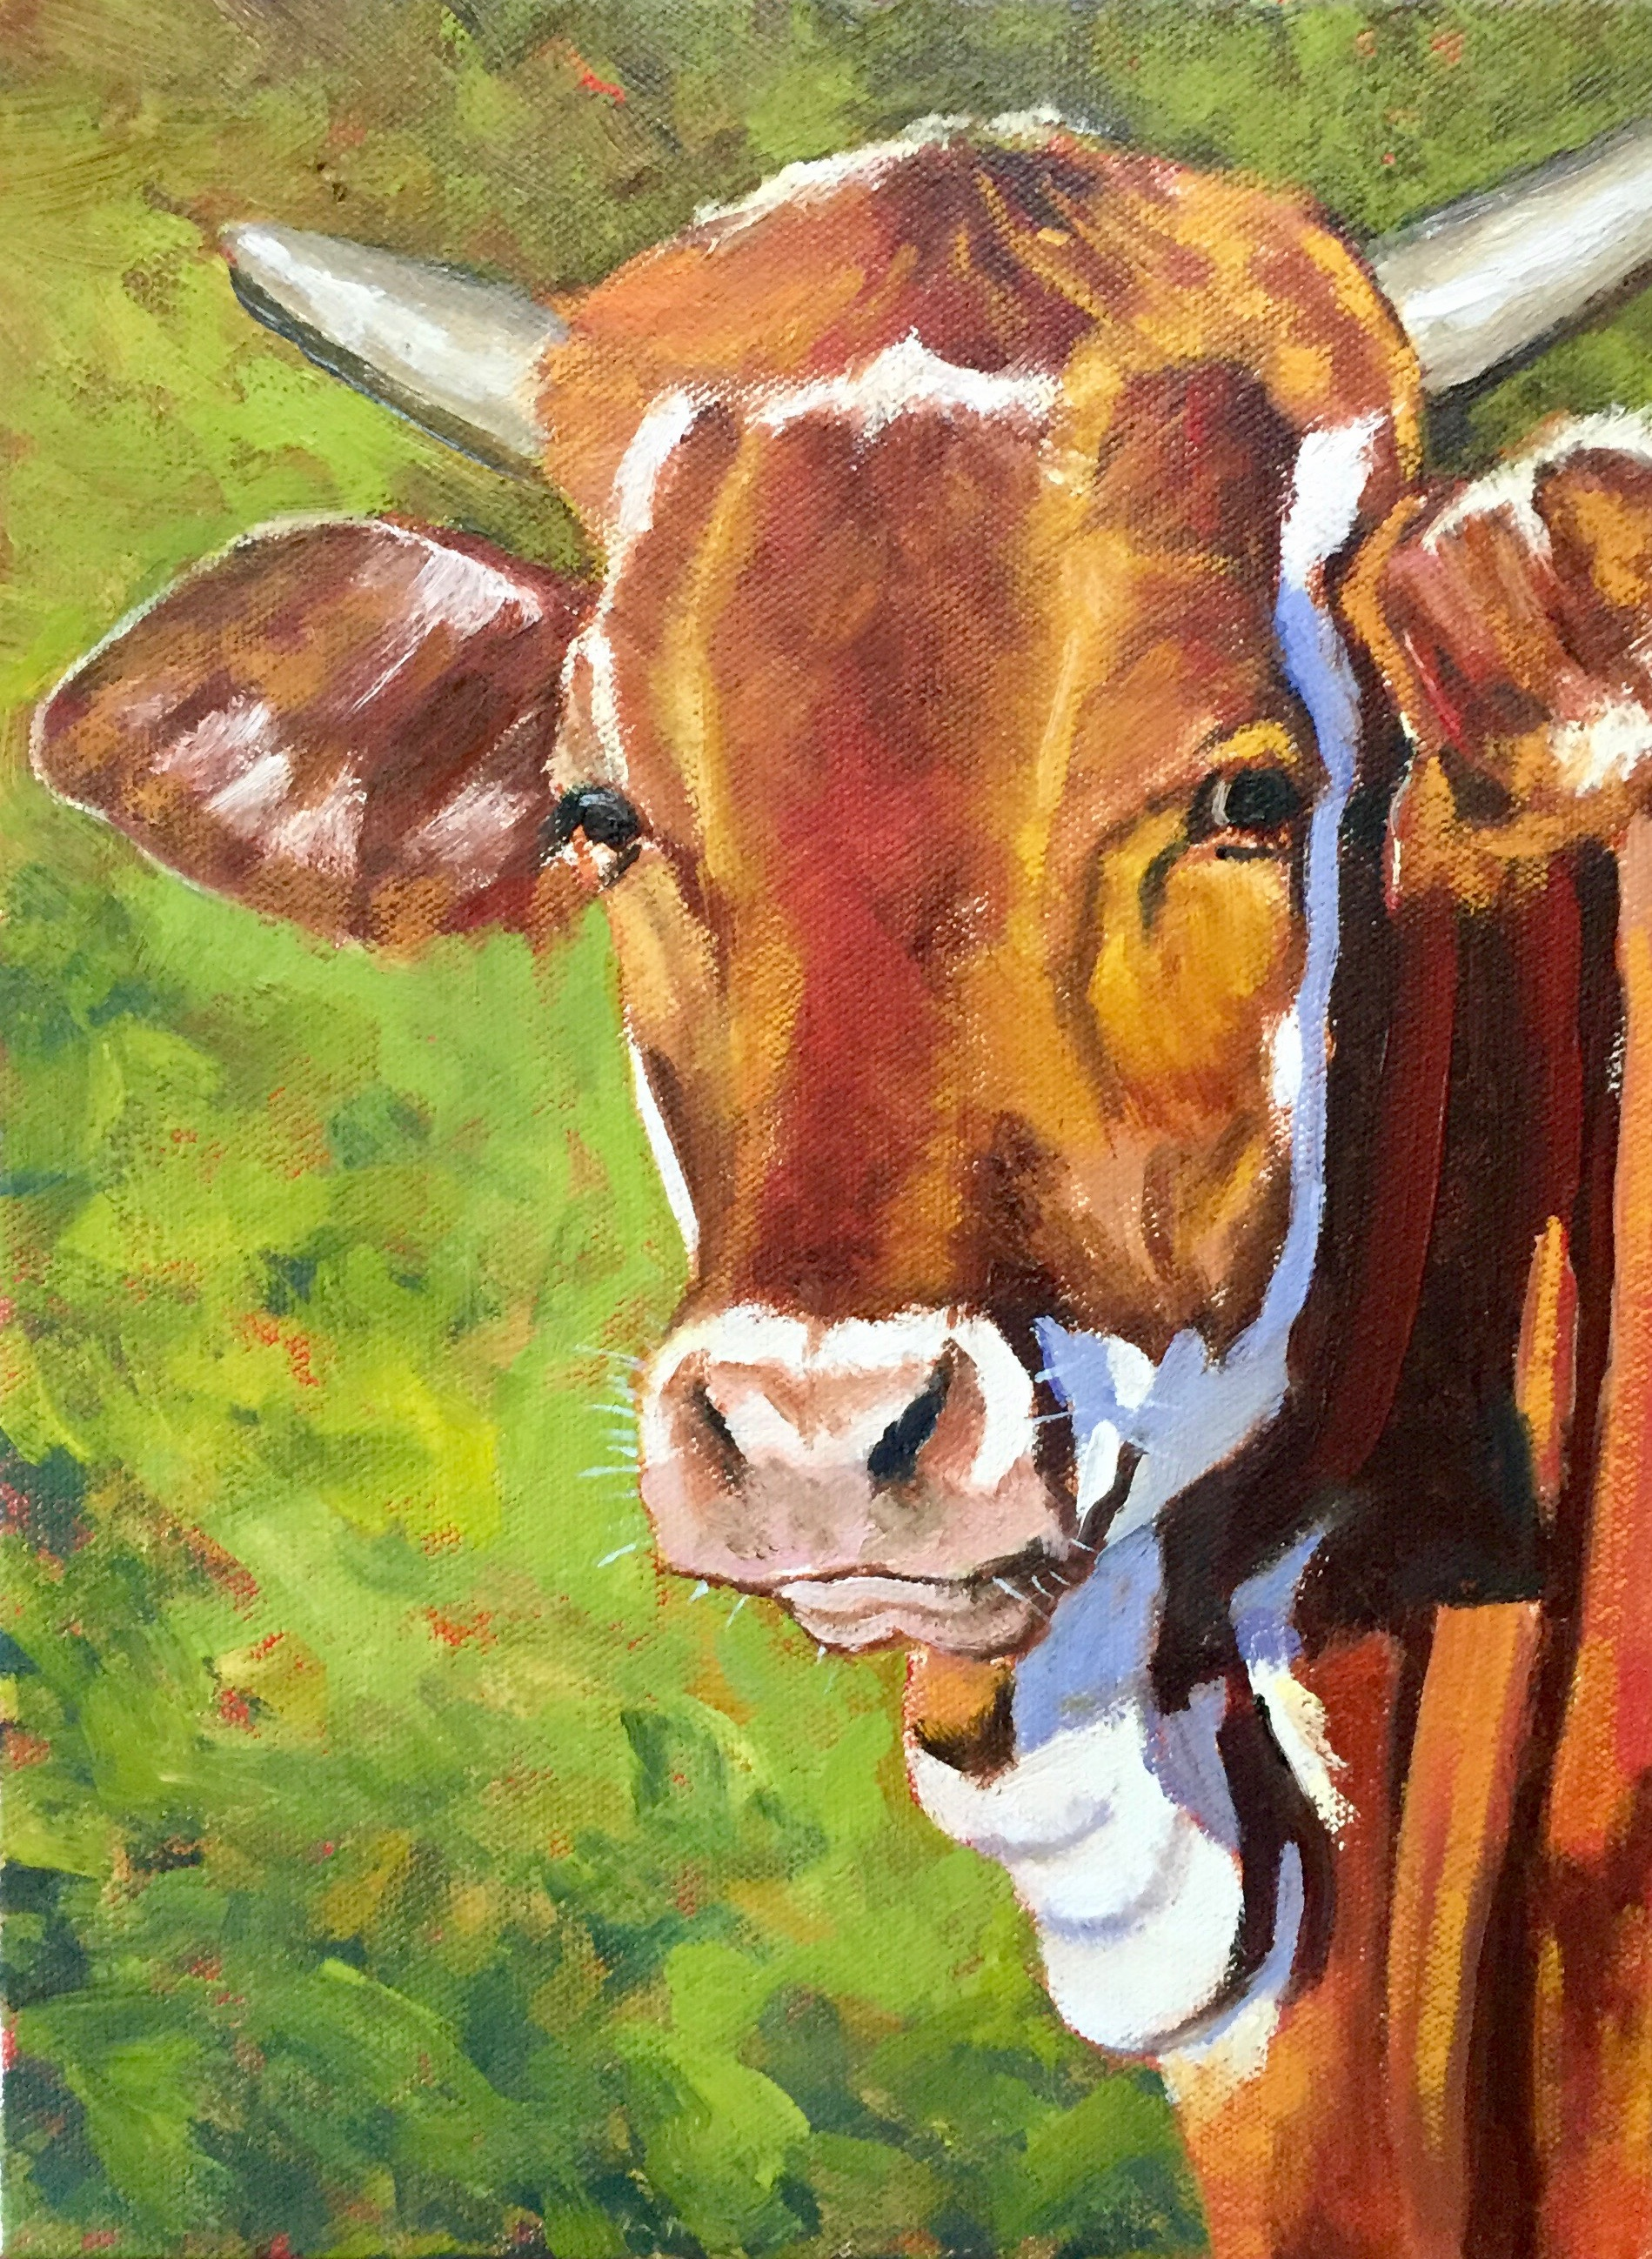 """Red Cow"", oil on canvas, 9"" x 12"", $400 (framed)"